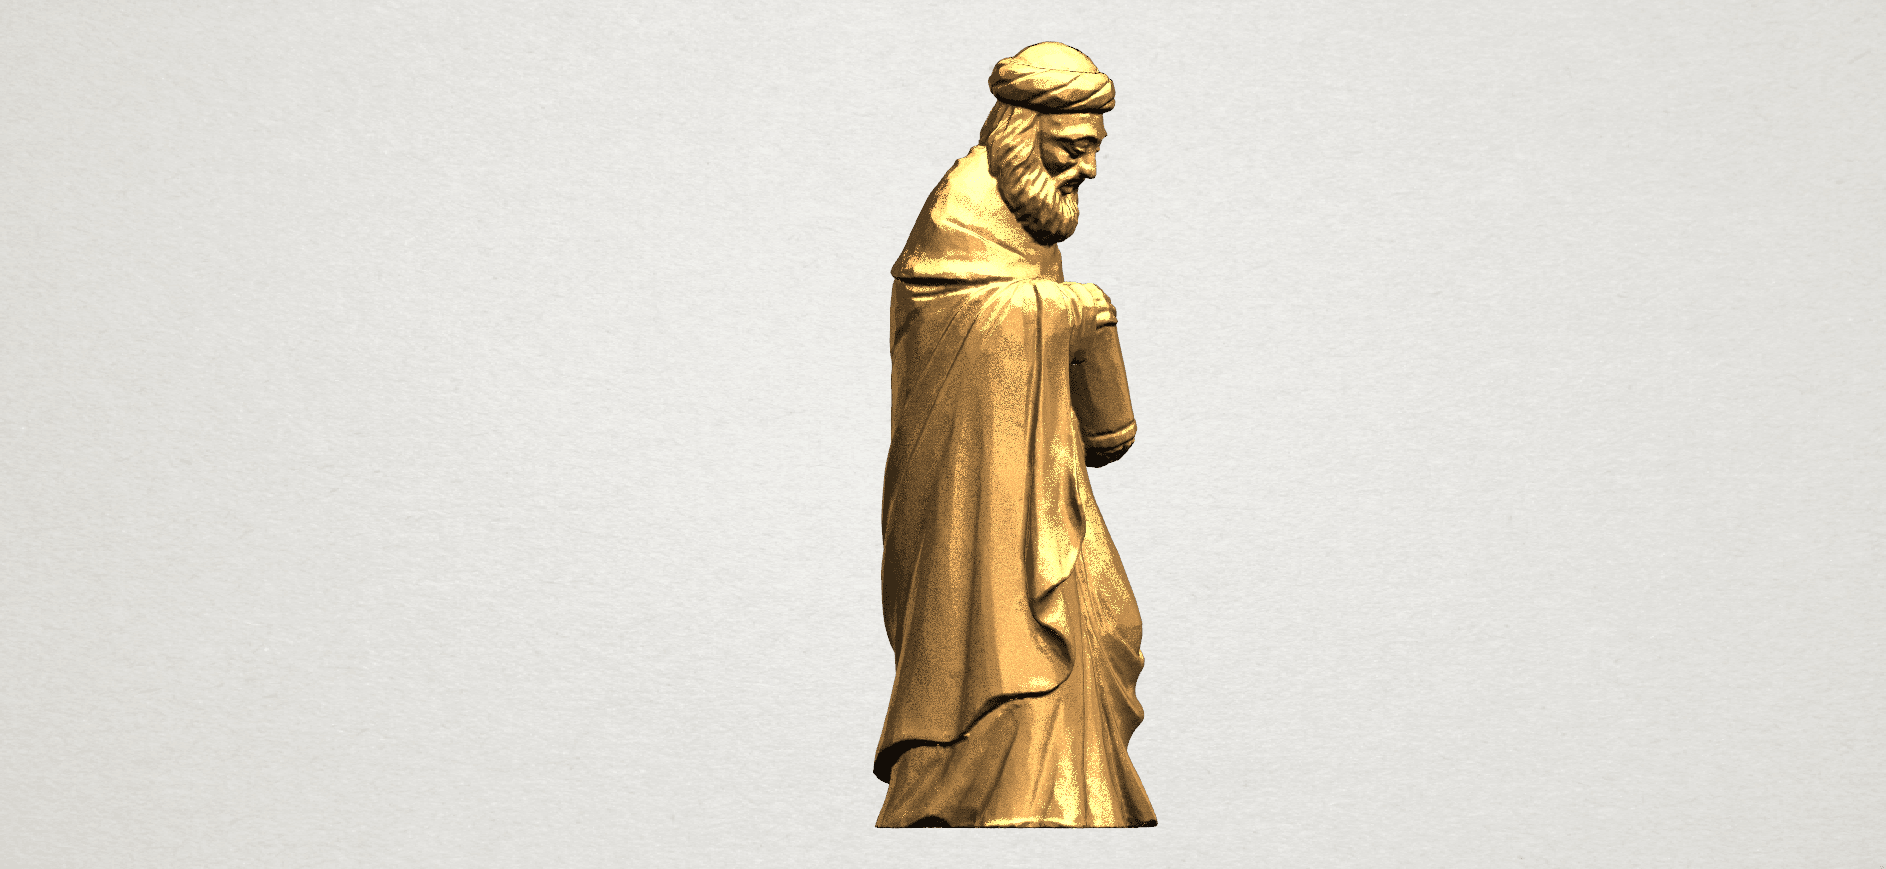 Sculpture of Arabian 88mm - A06.png Download free STL file Sculpture of Arabian • 3D print template, GeorgesNikkei